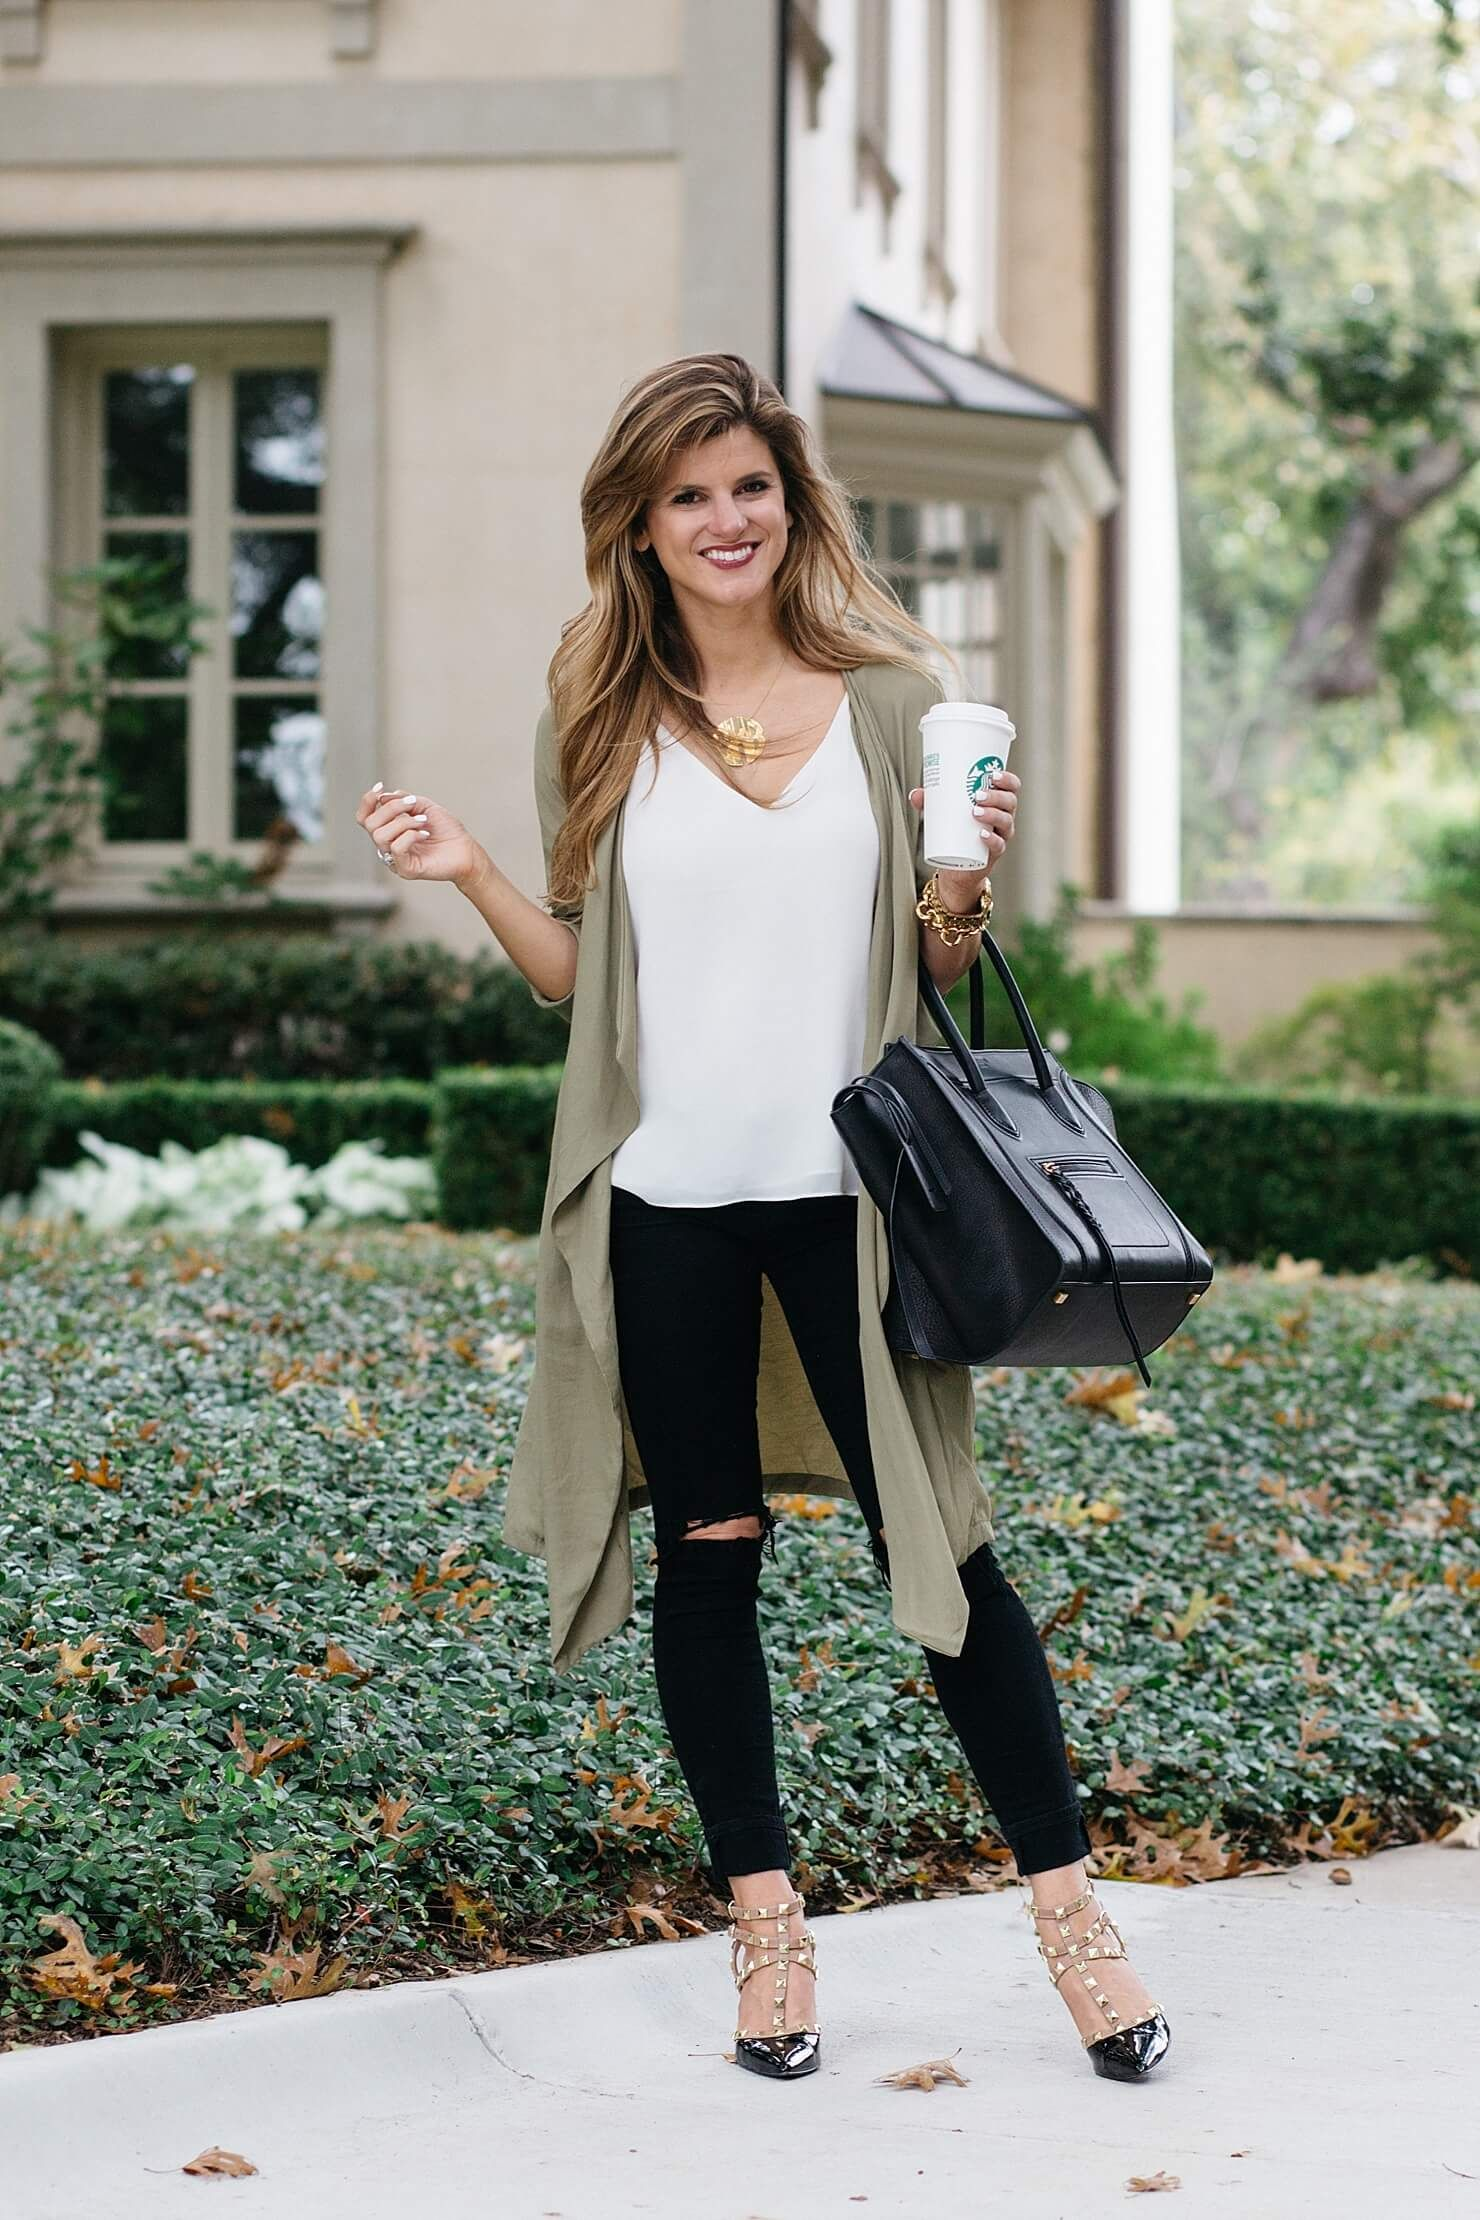 814eb78ae1c ... snappy casual outfit with dupe valentino heels, monogram necklace,  celine phantom tote, topshop white camisole, black distressed jeans, fall  outfit